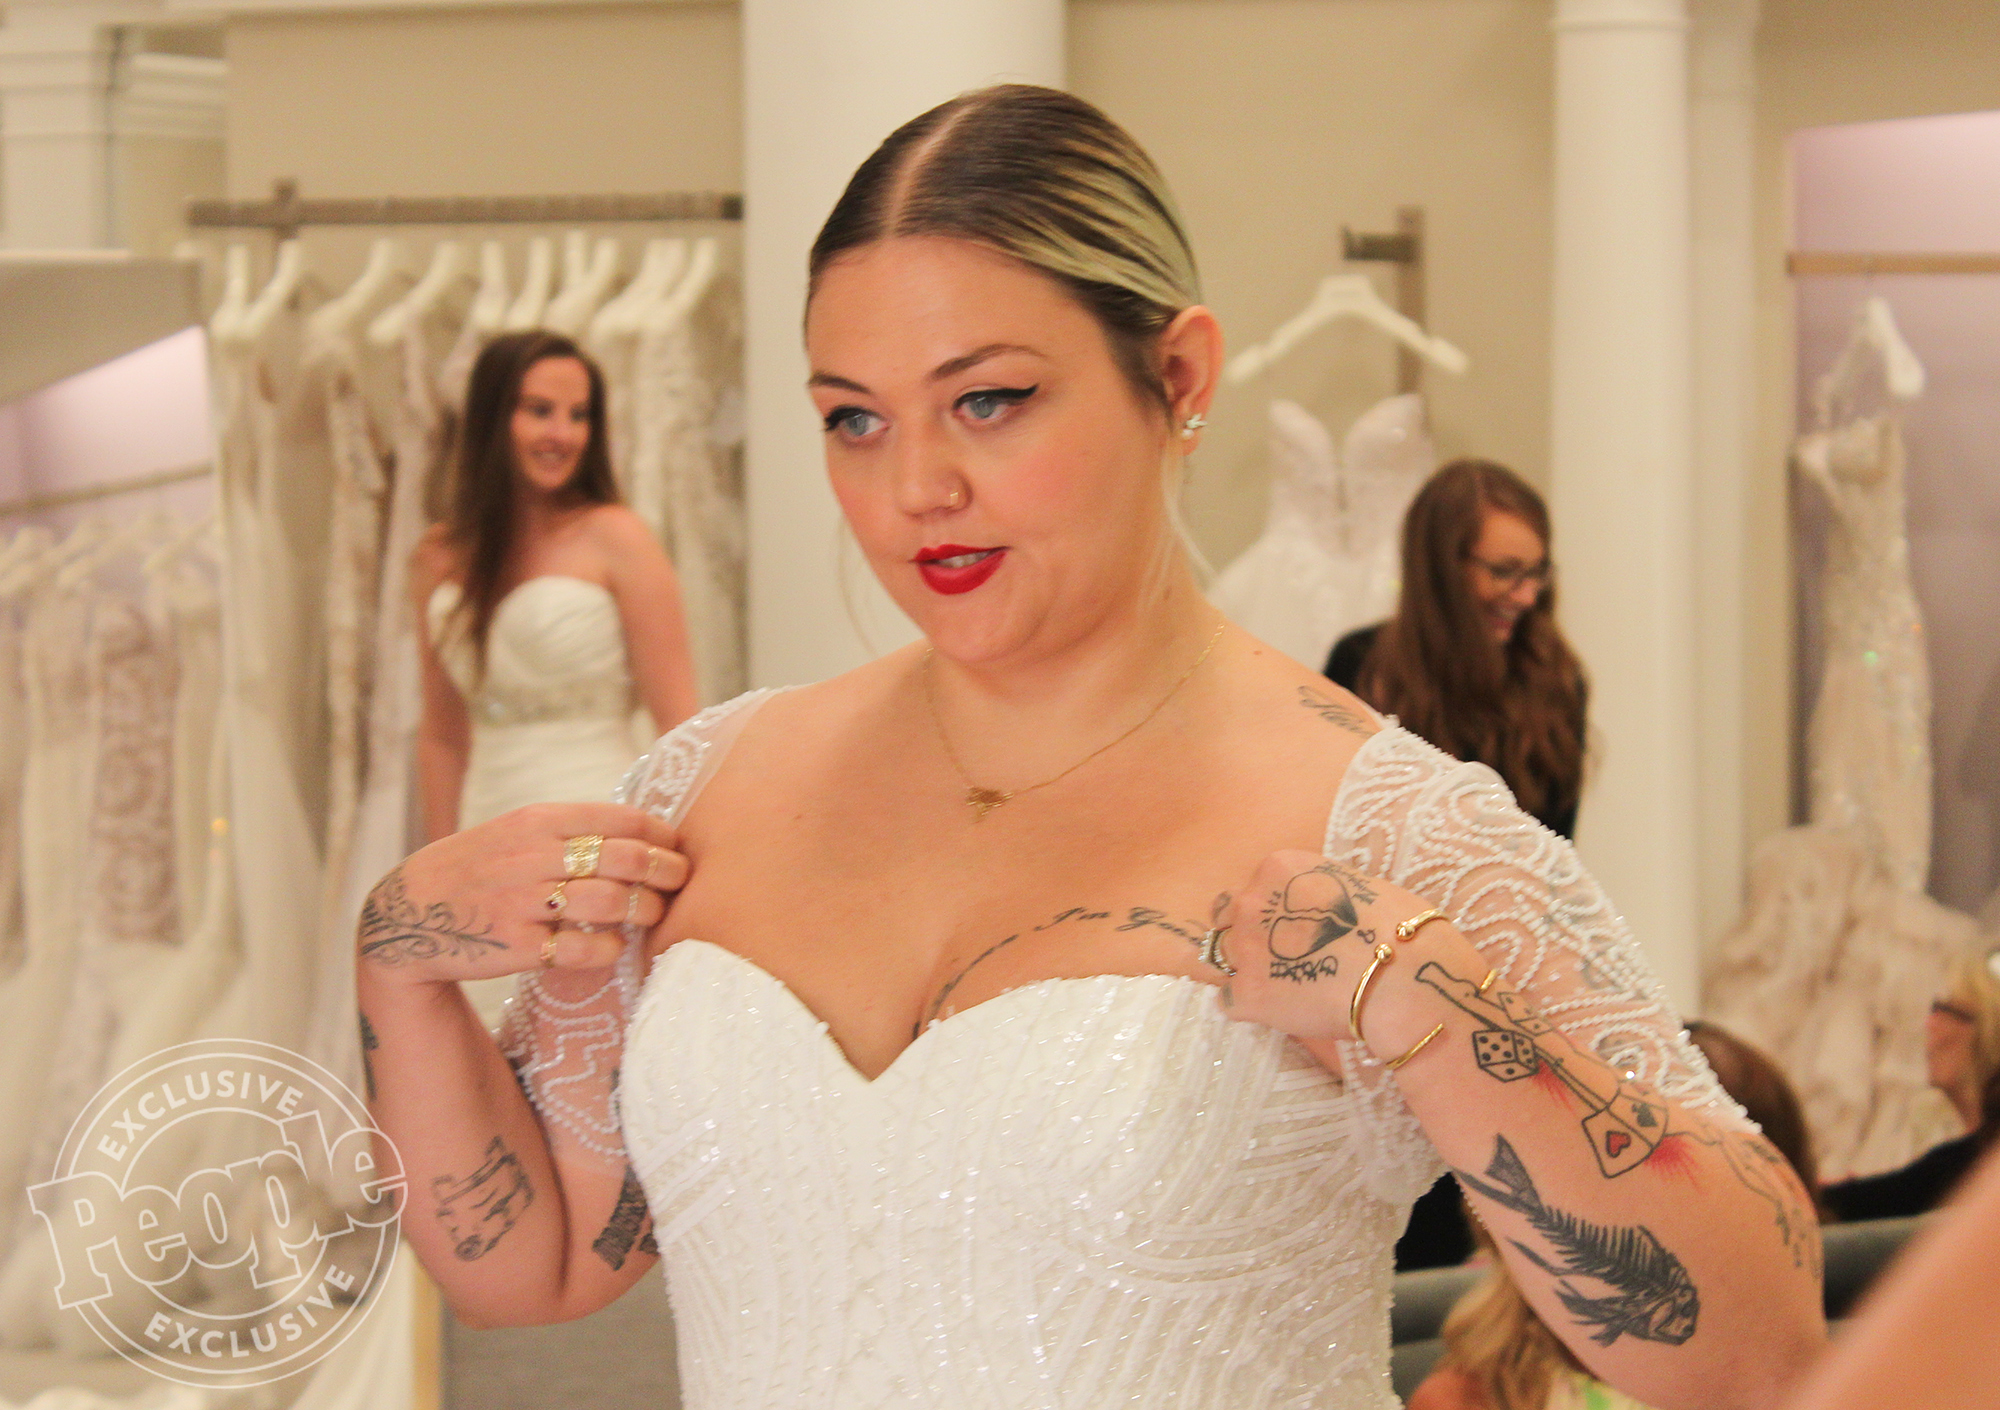 FIRST LOOK - Elle King on Say Yes To The Dress. CREDIT: TLC